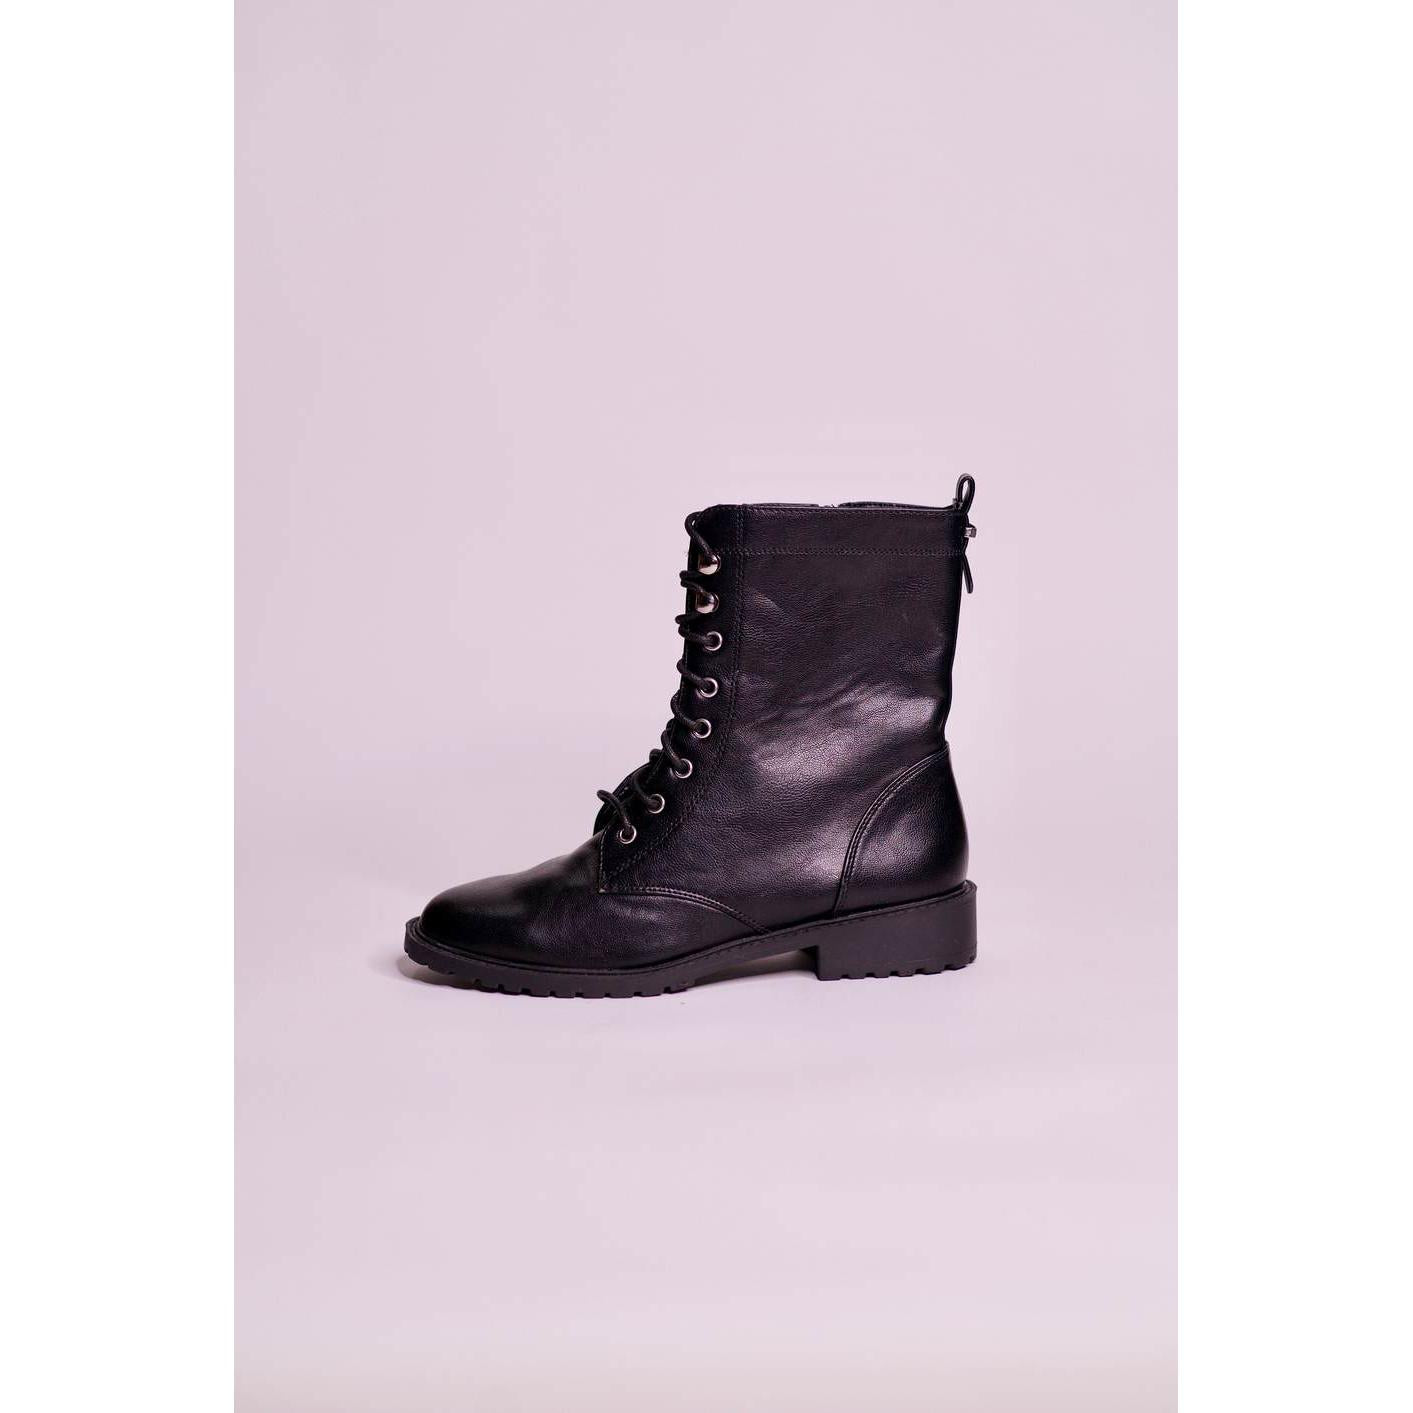 Parfois Faux Leather Combat Boots - The HiO Life